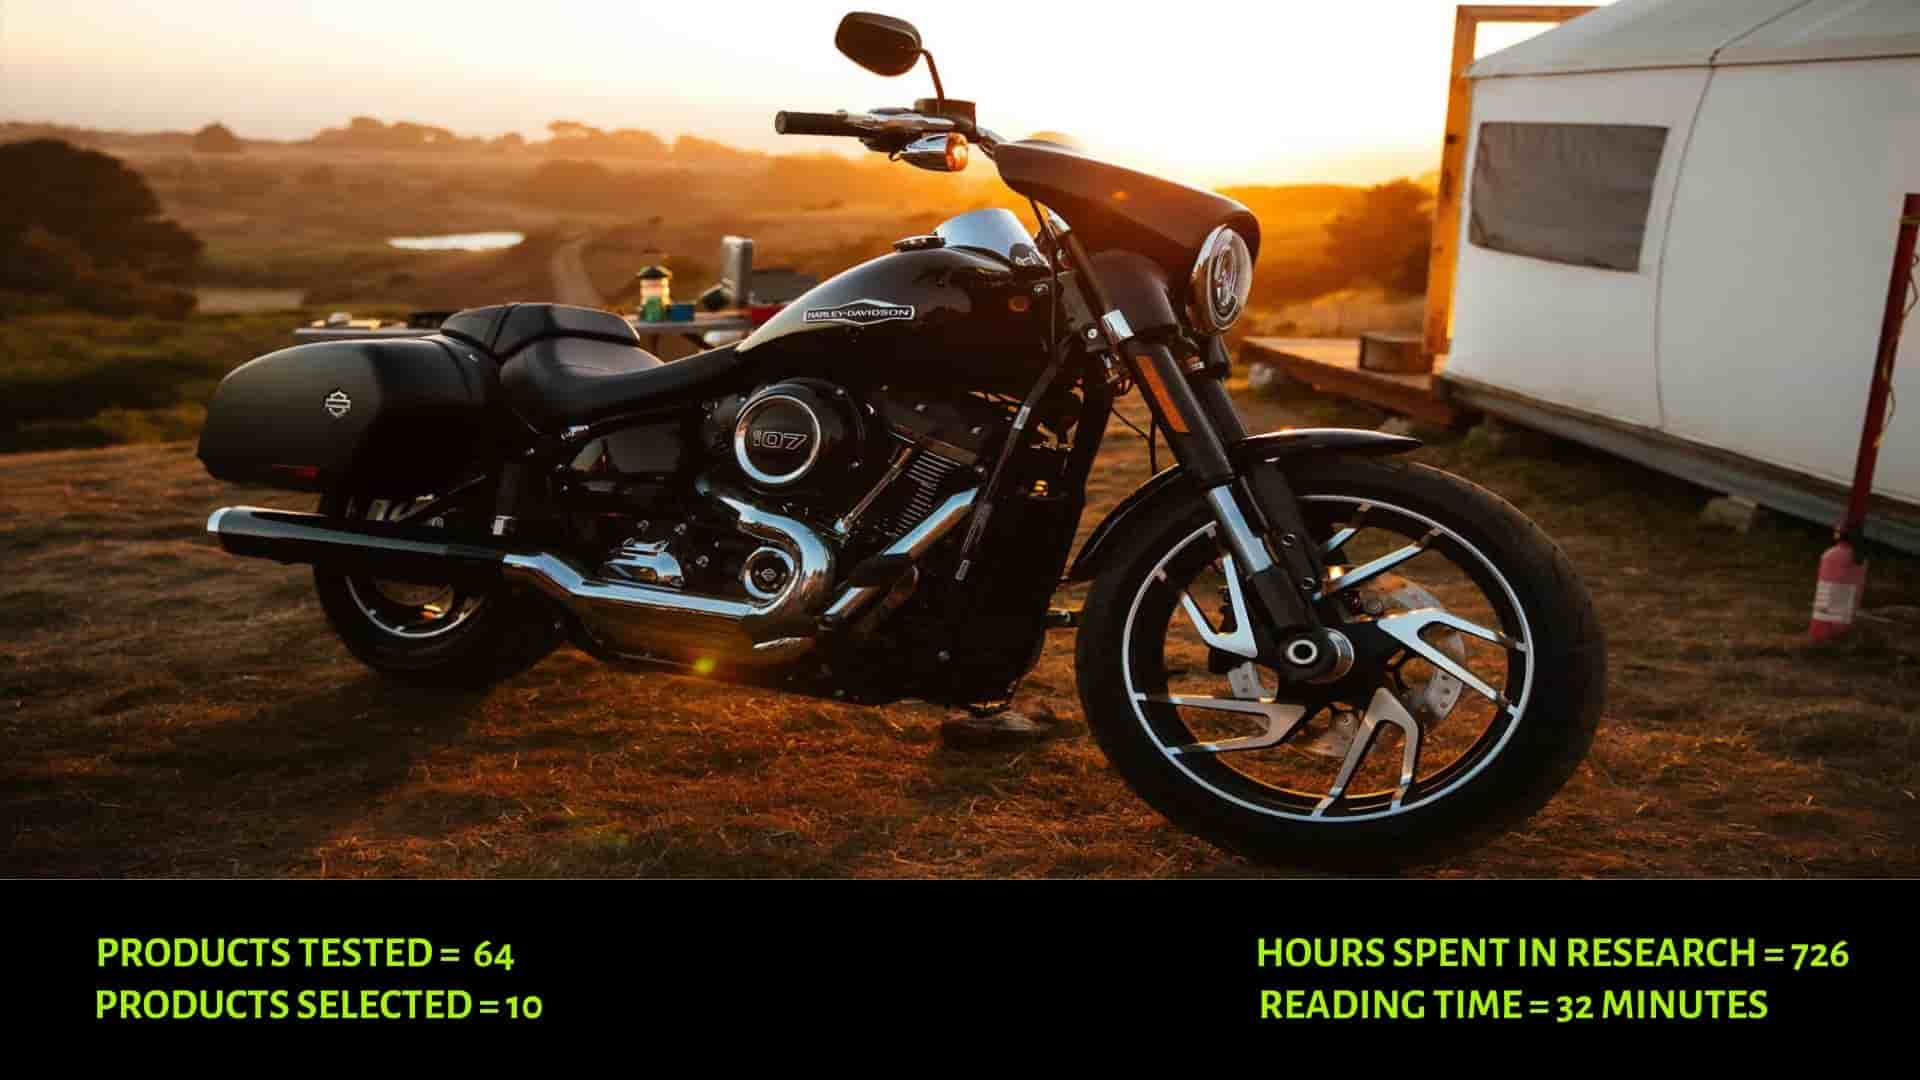 Best Bike Under 1 Lakh in India in 2021 Reviews